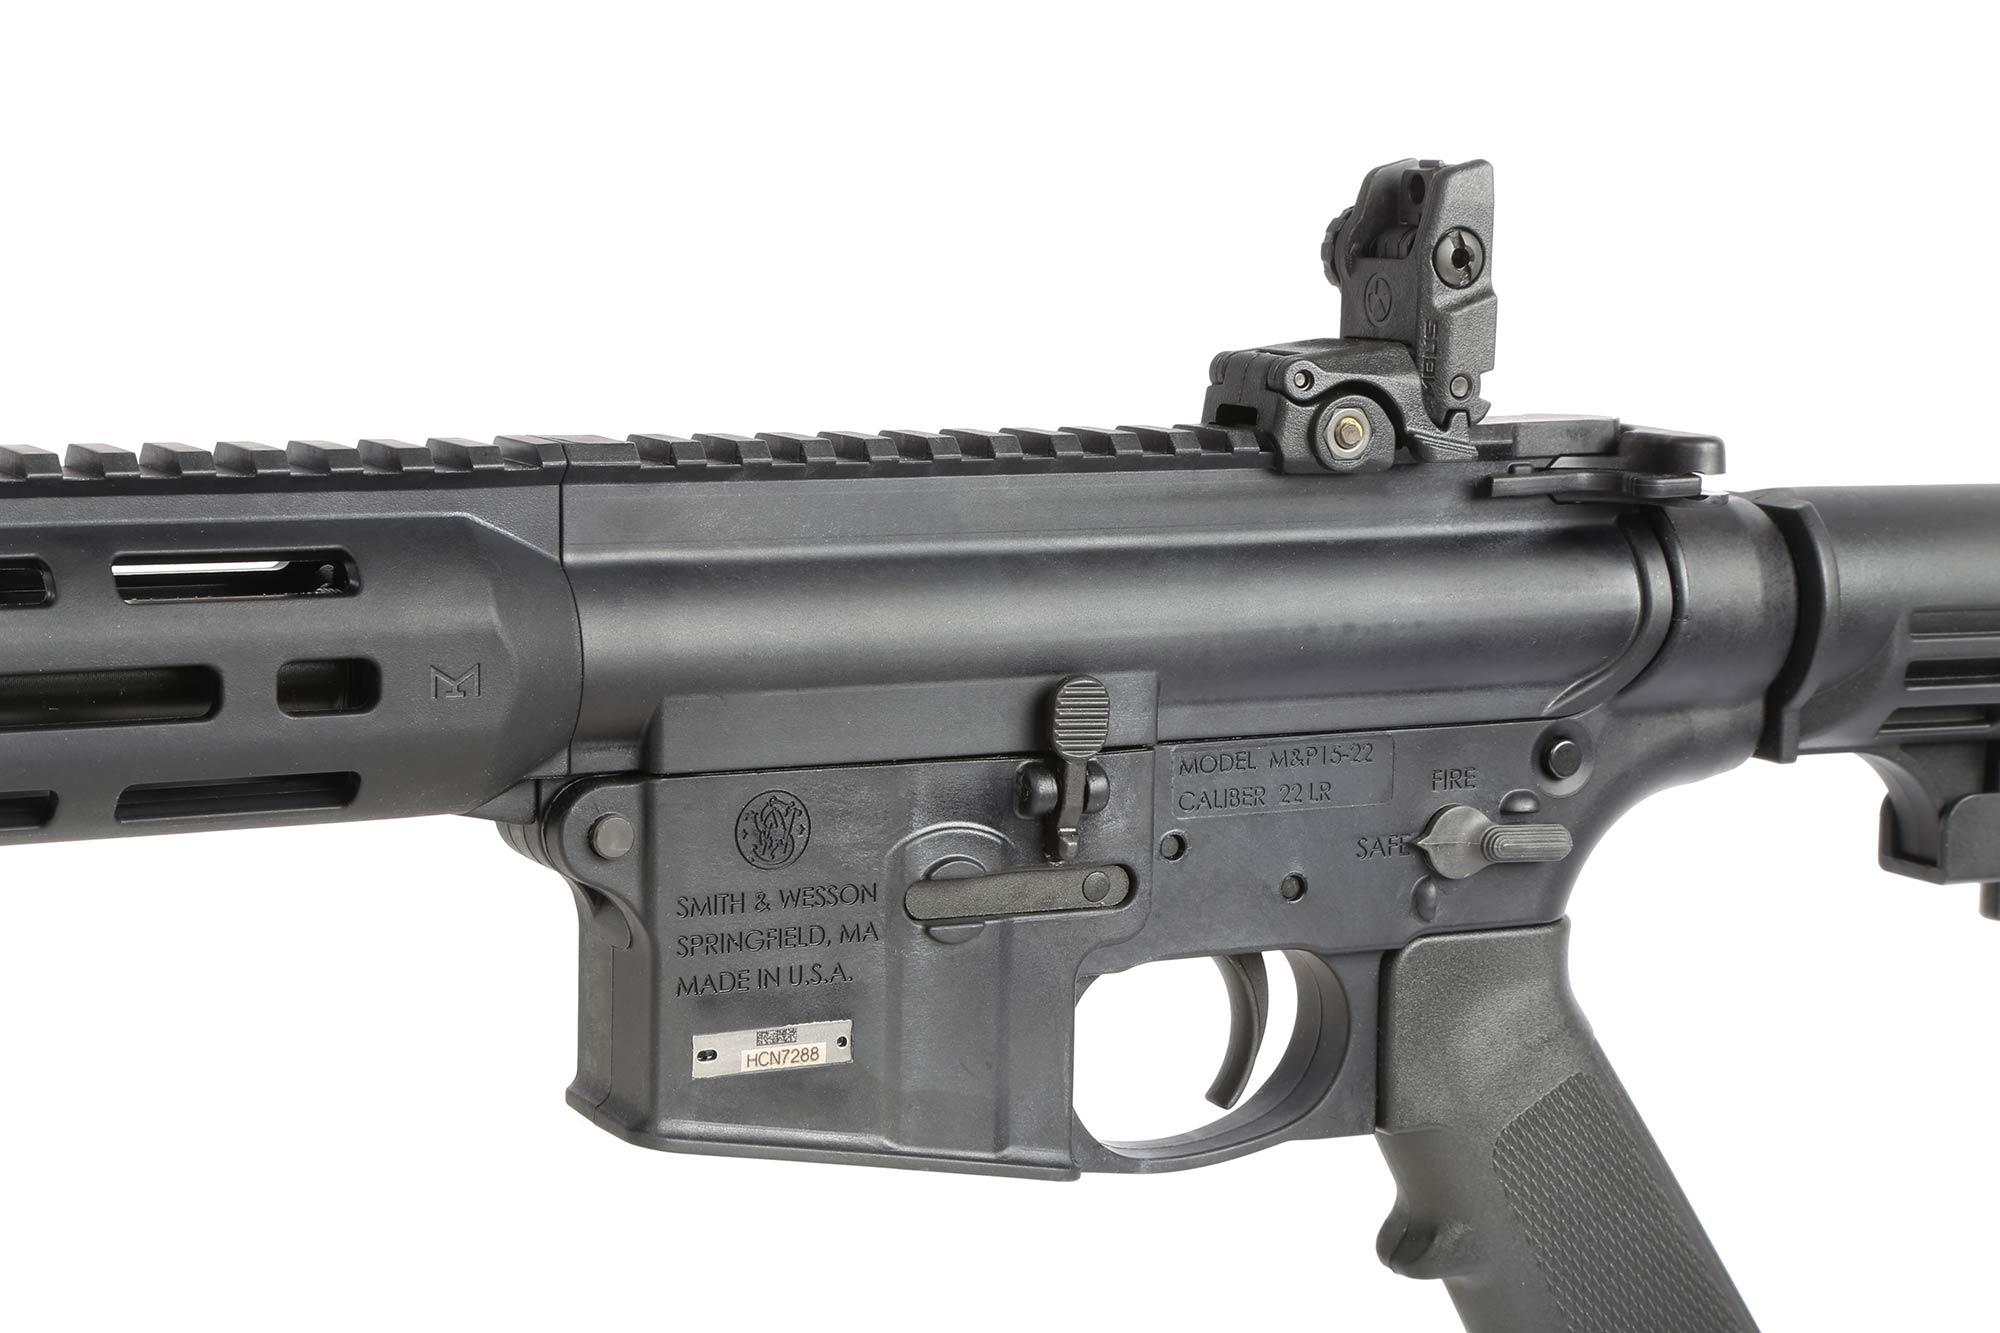 Smith & Wesson M&P15-22 Sport .22lr Rifle - 16.5 - M-LOK Handguard